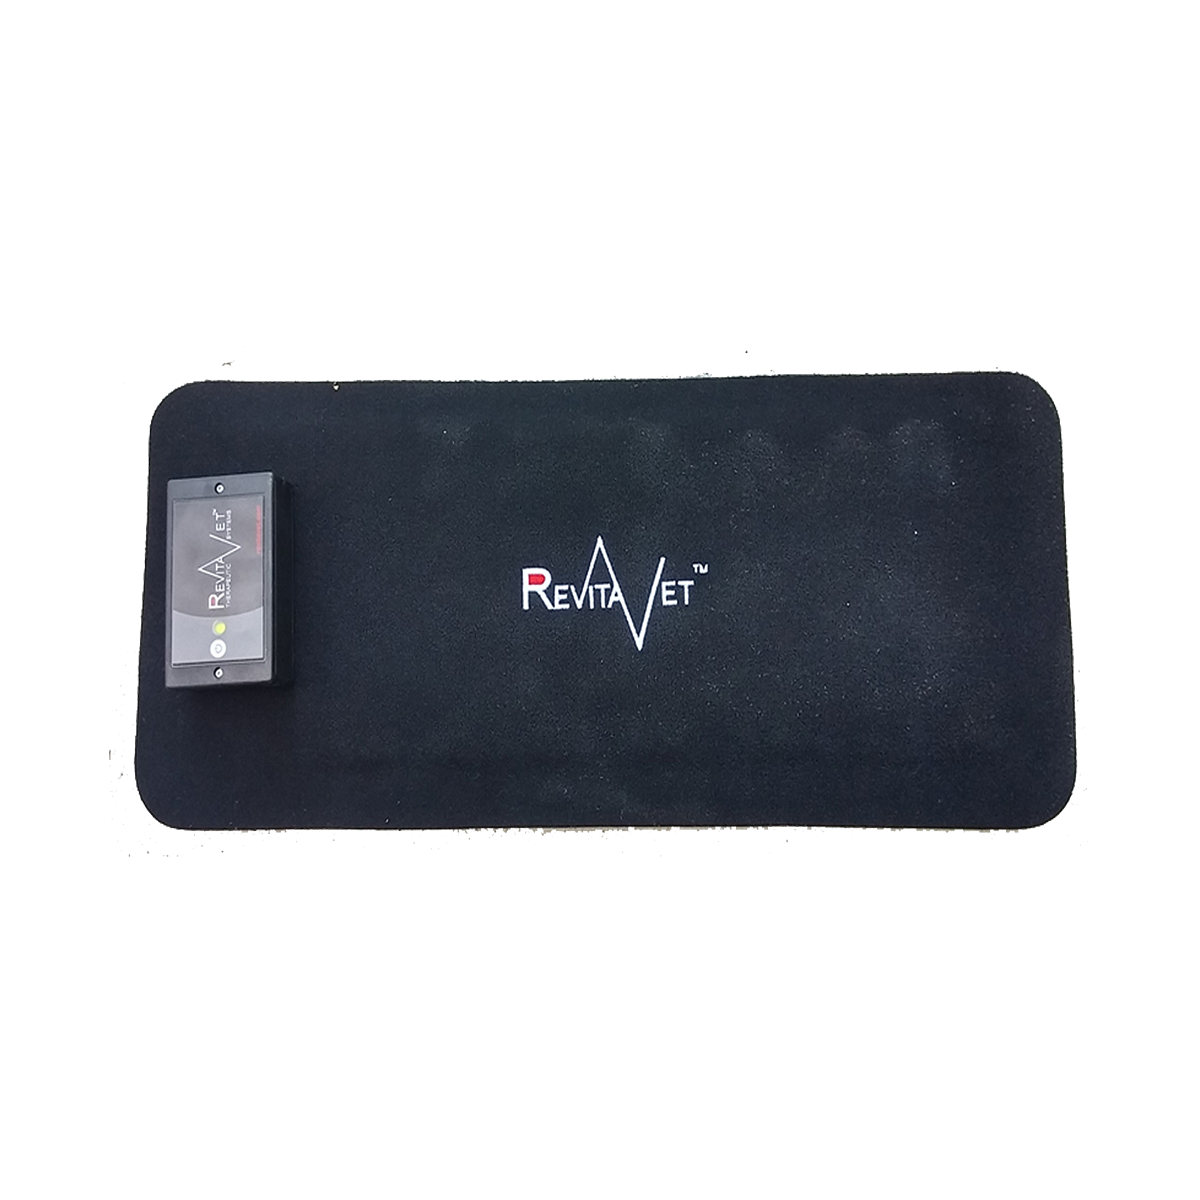 BackSaver